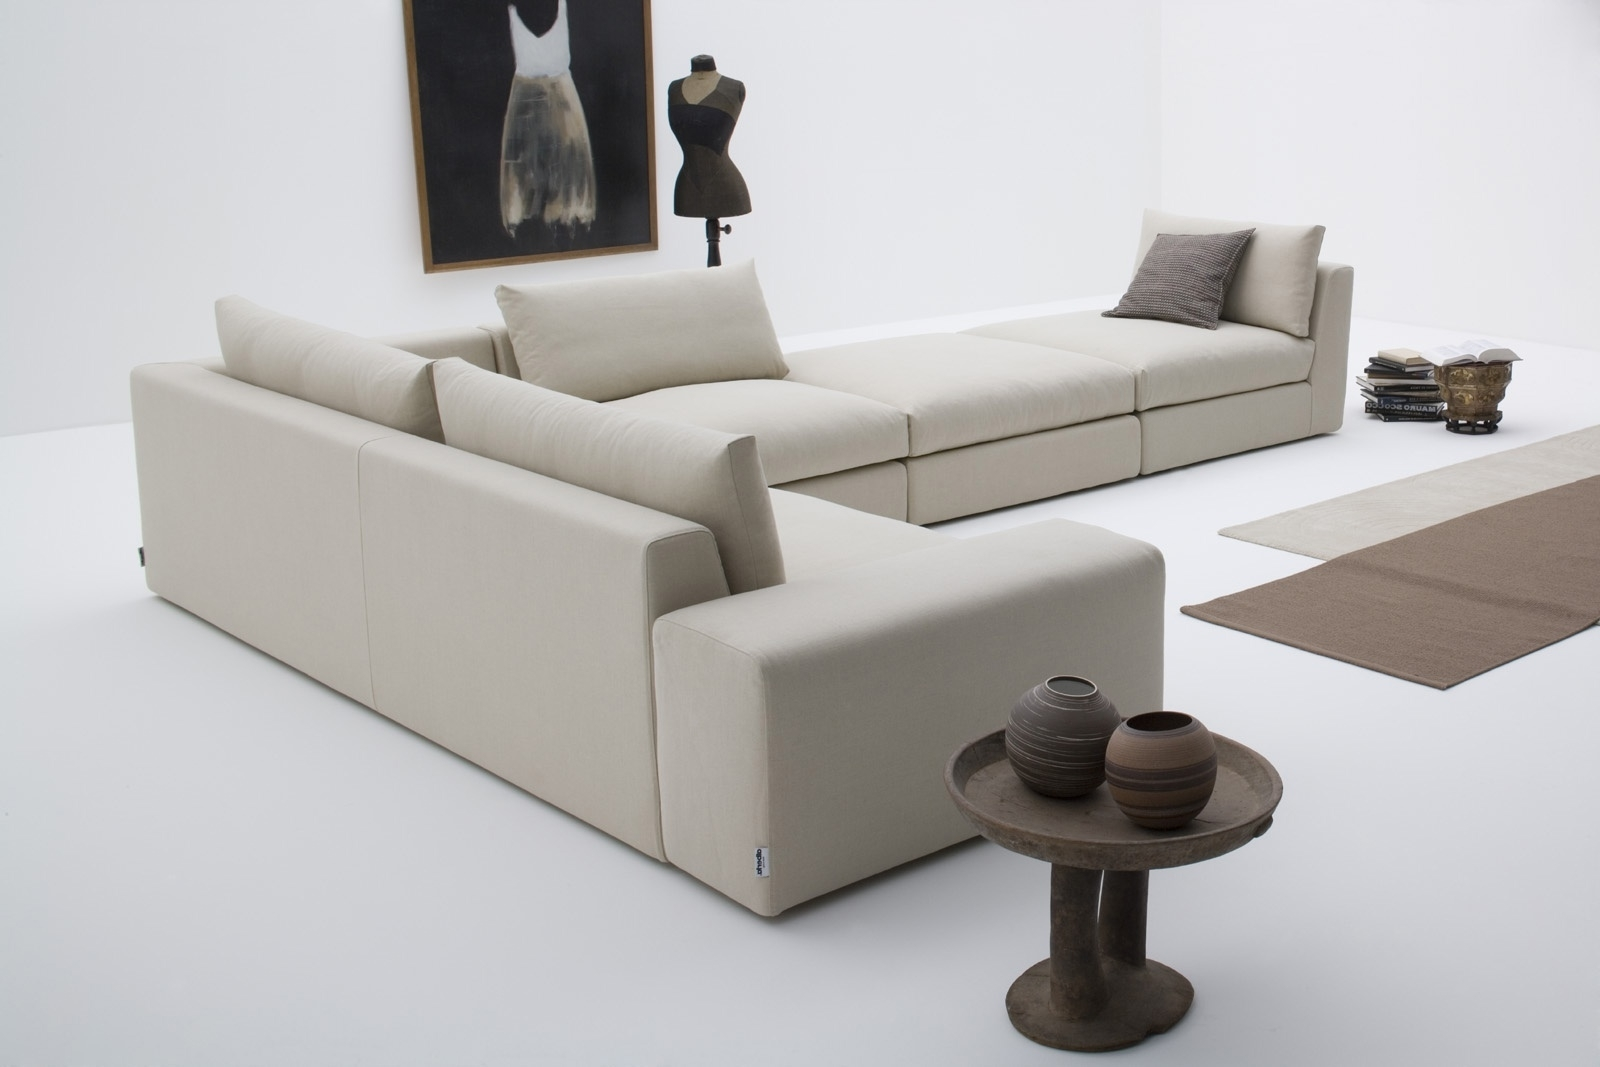 Modular Sofa Newport, Alberta Salotti – Luxury Furniture Mr Inside Latest Newport Sofas (View 10 of 20)